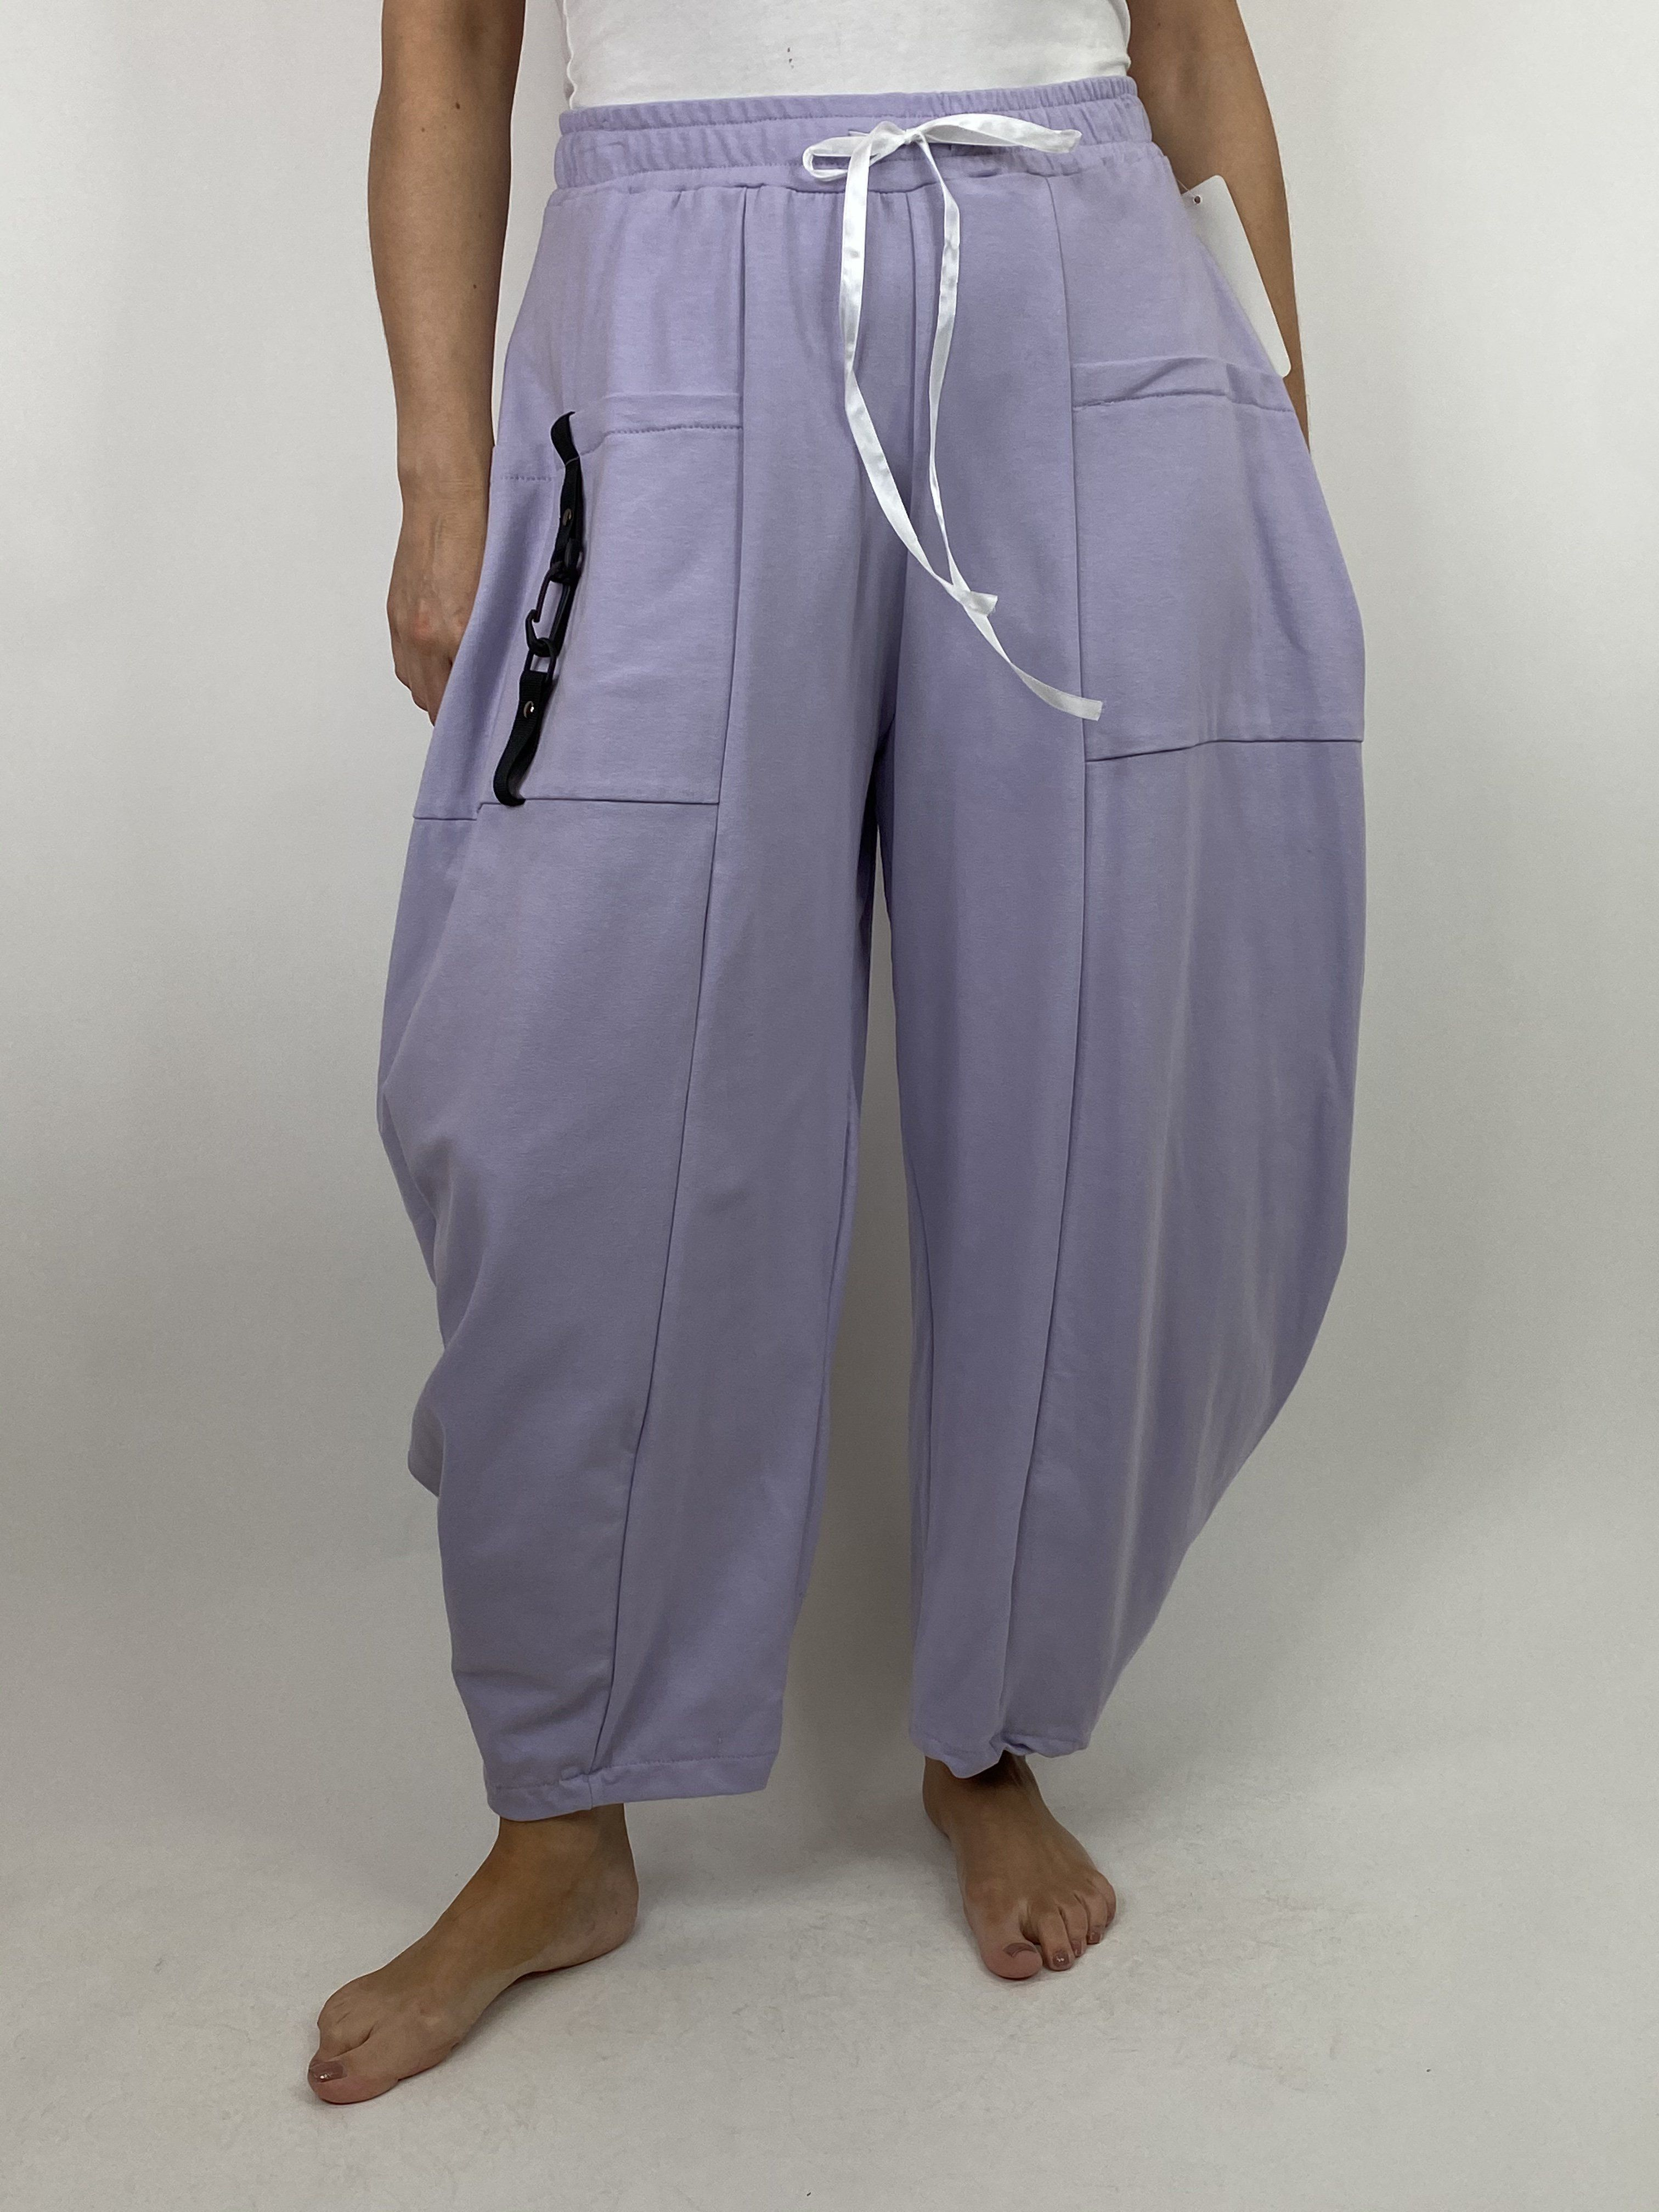 Lagenlook Wide Angle leg Sweat pants Trousers in Lilac. code 4040 #wideangle